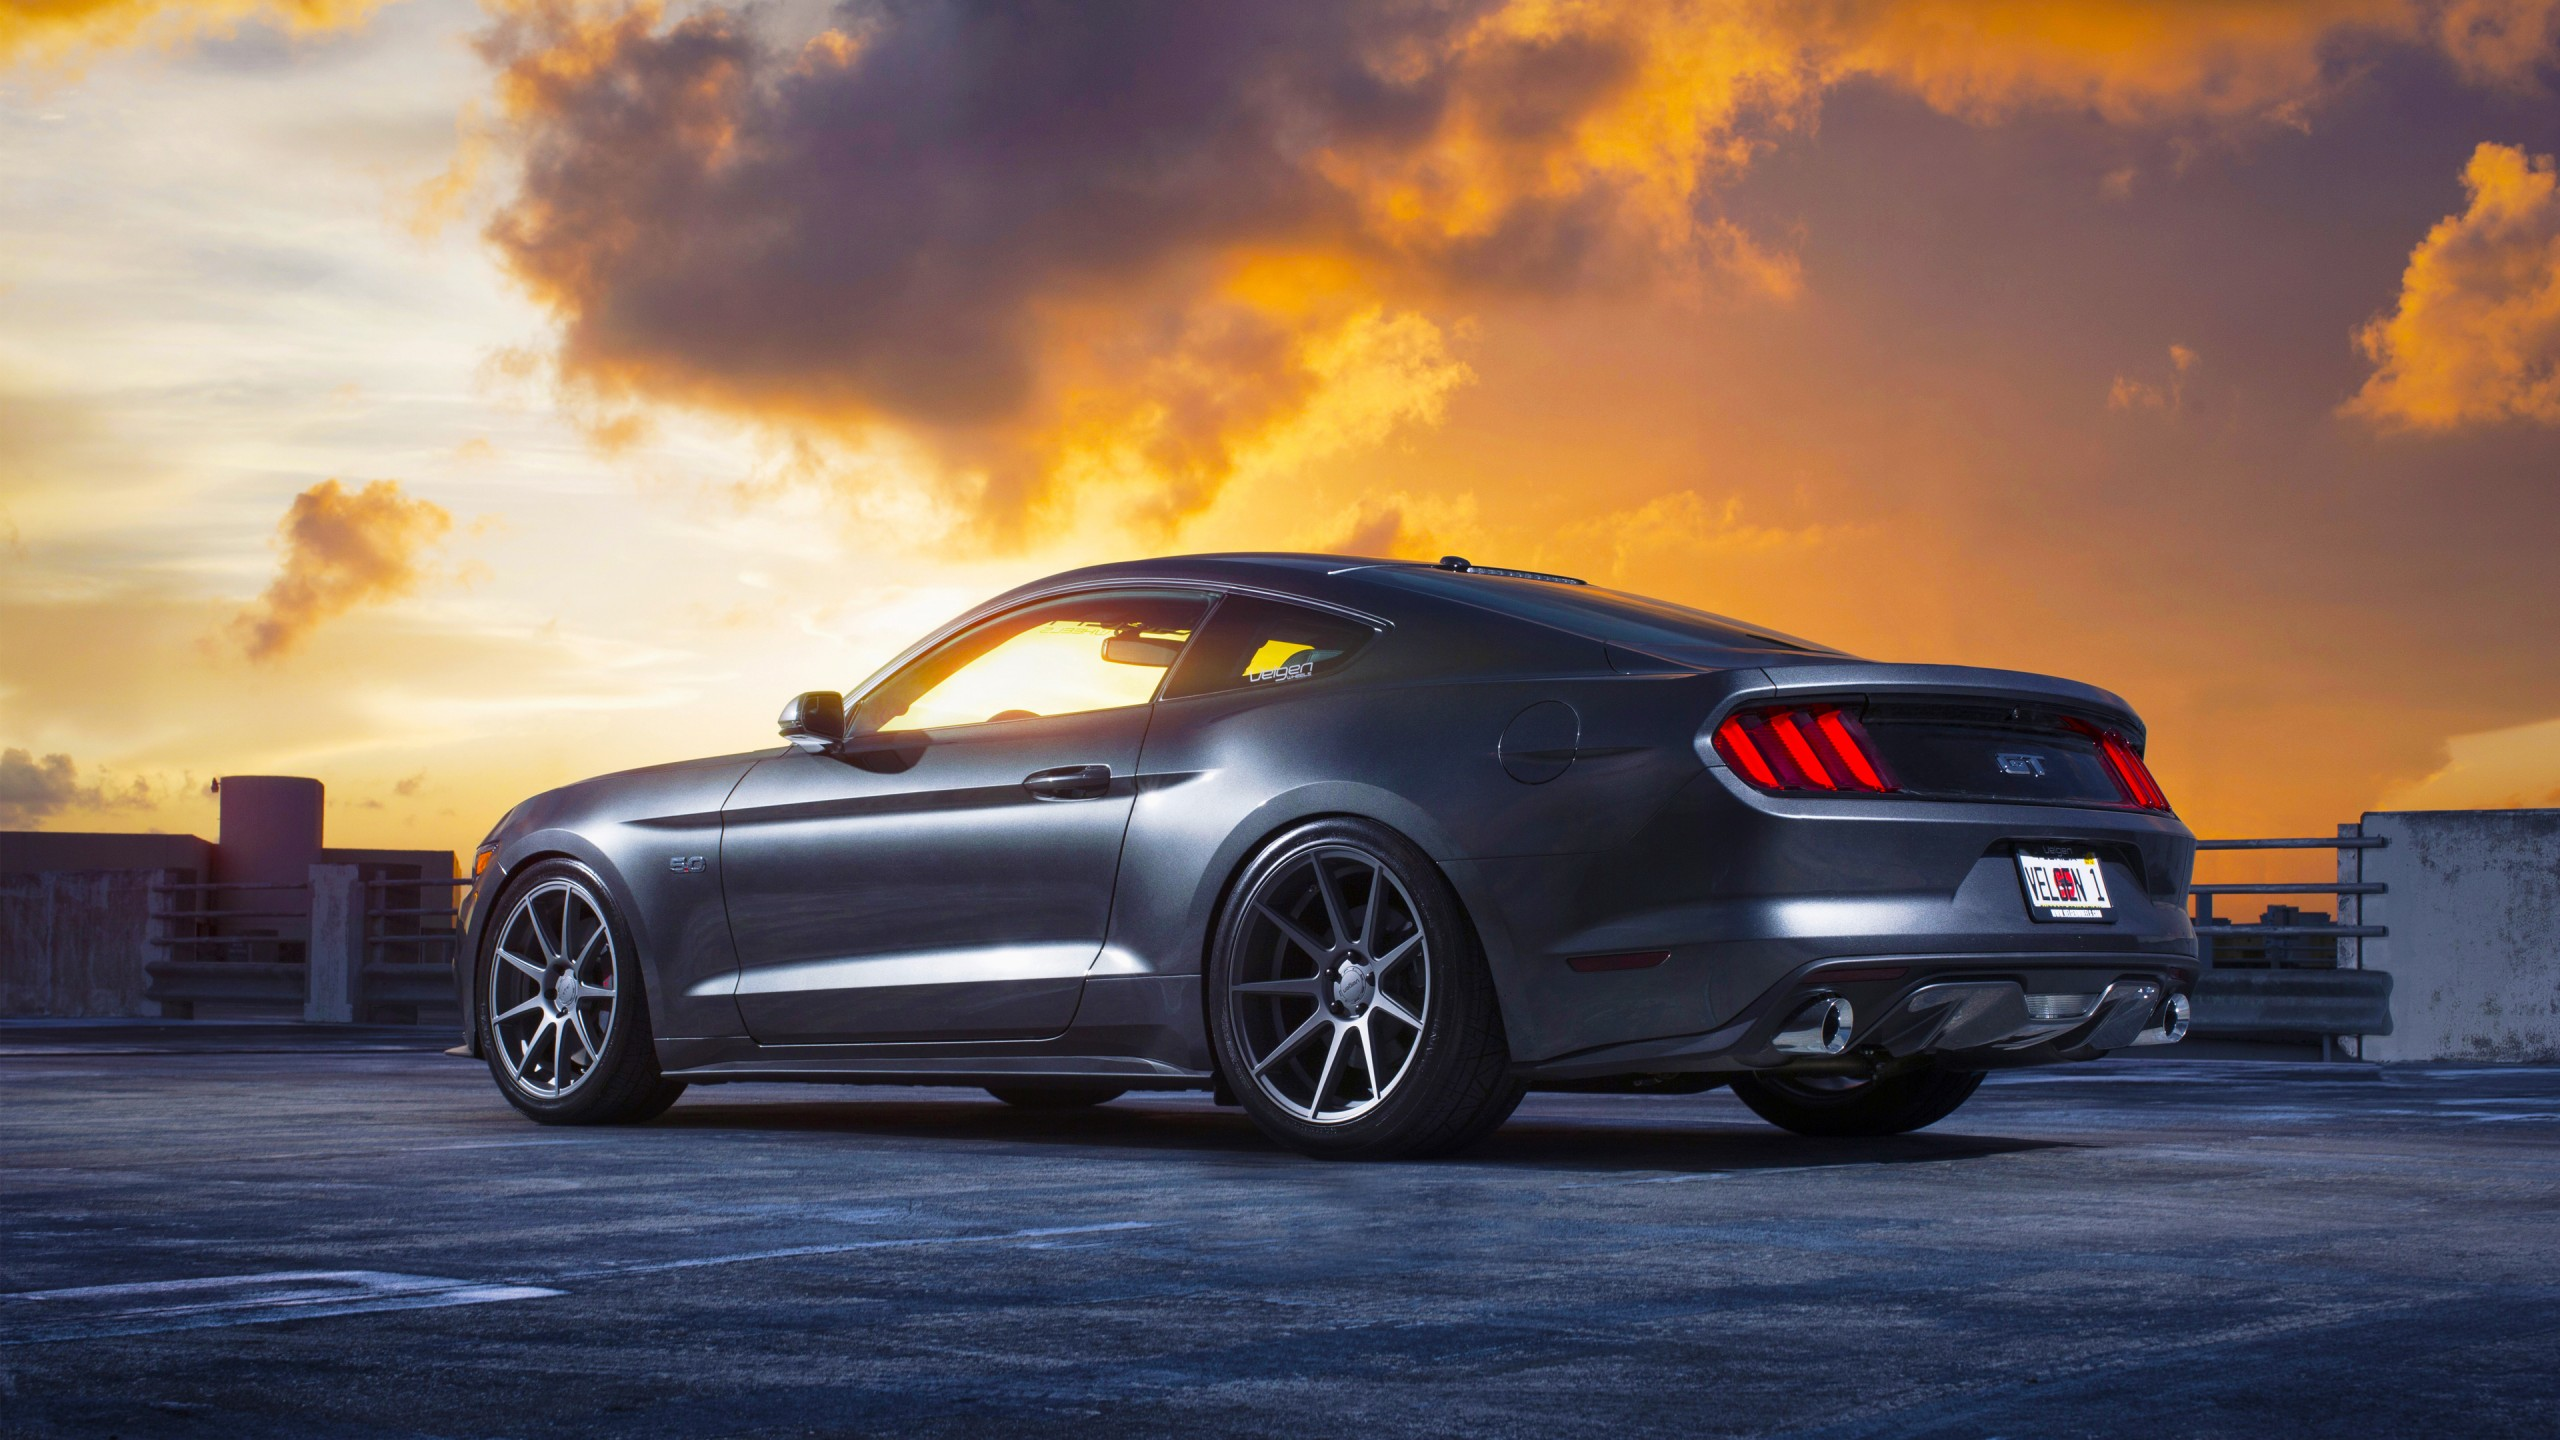 2015 Mustang Wheels >> Velgen Ford Mustang VMB9 Wheels Wallpaper | HD Car ...